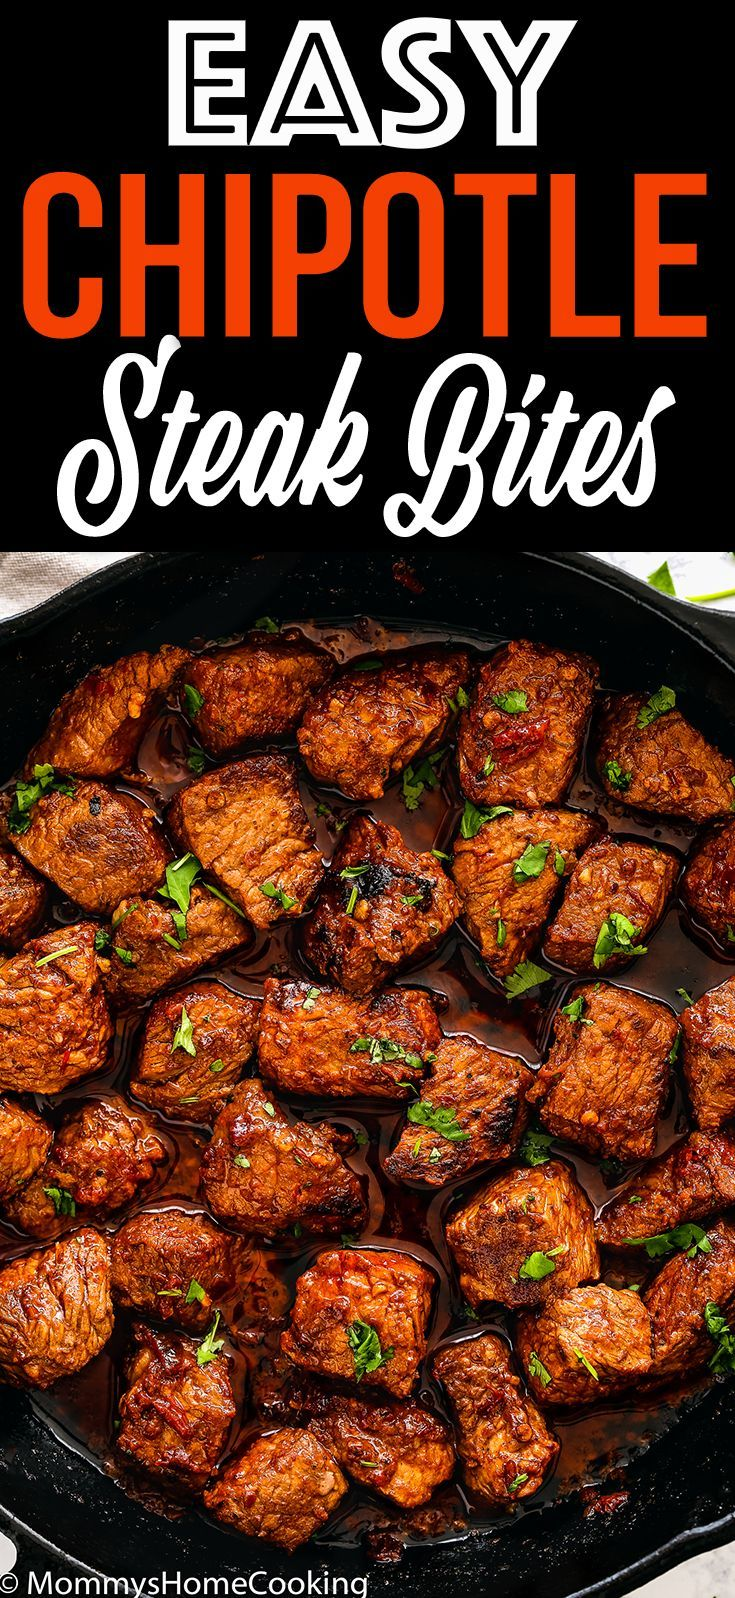 Easy Chipotle Steak Bites #beefsteakrecipe